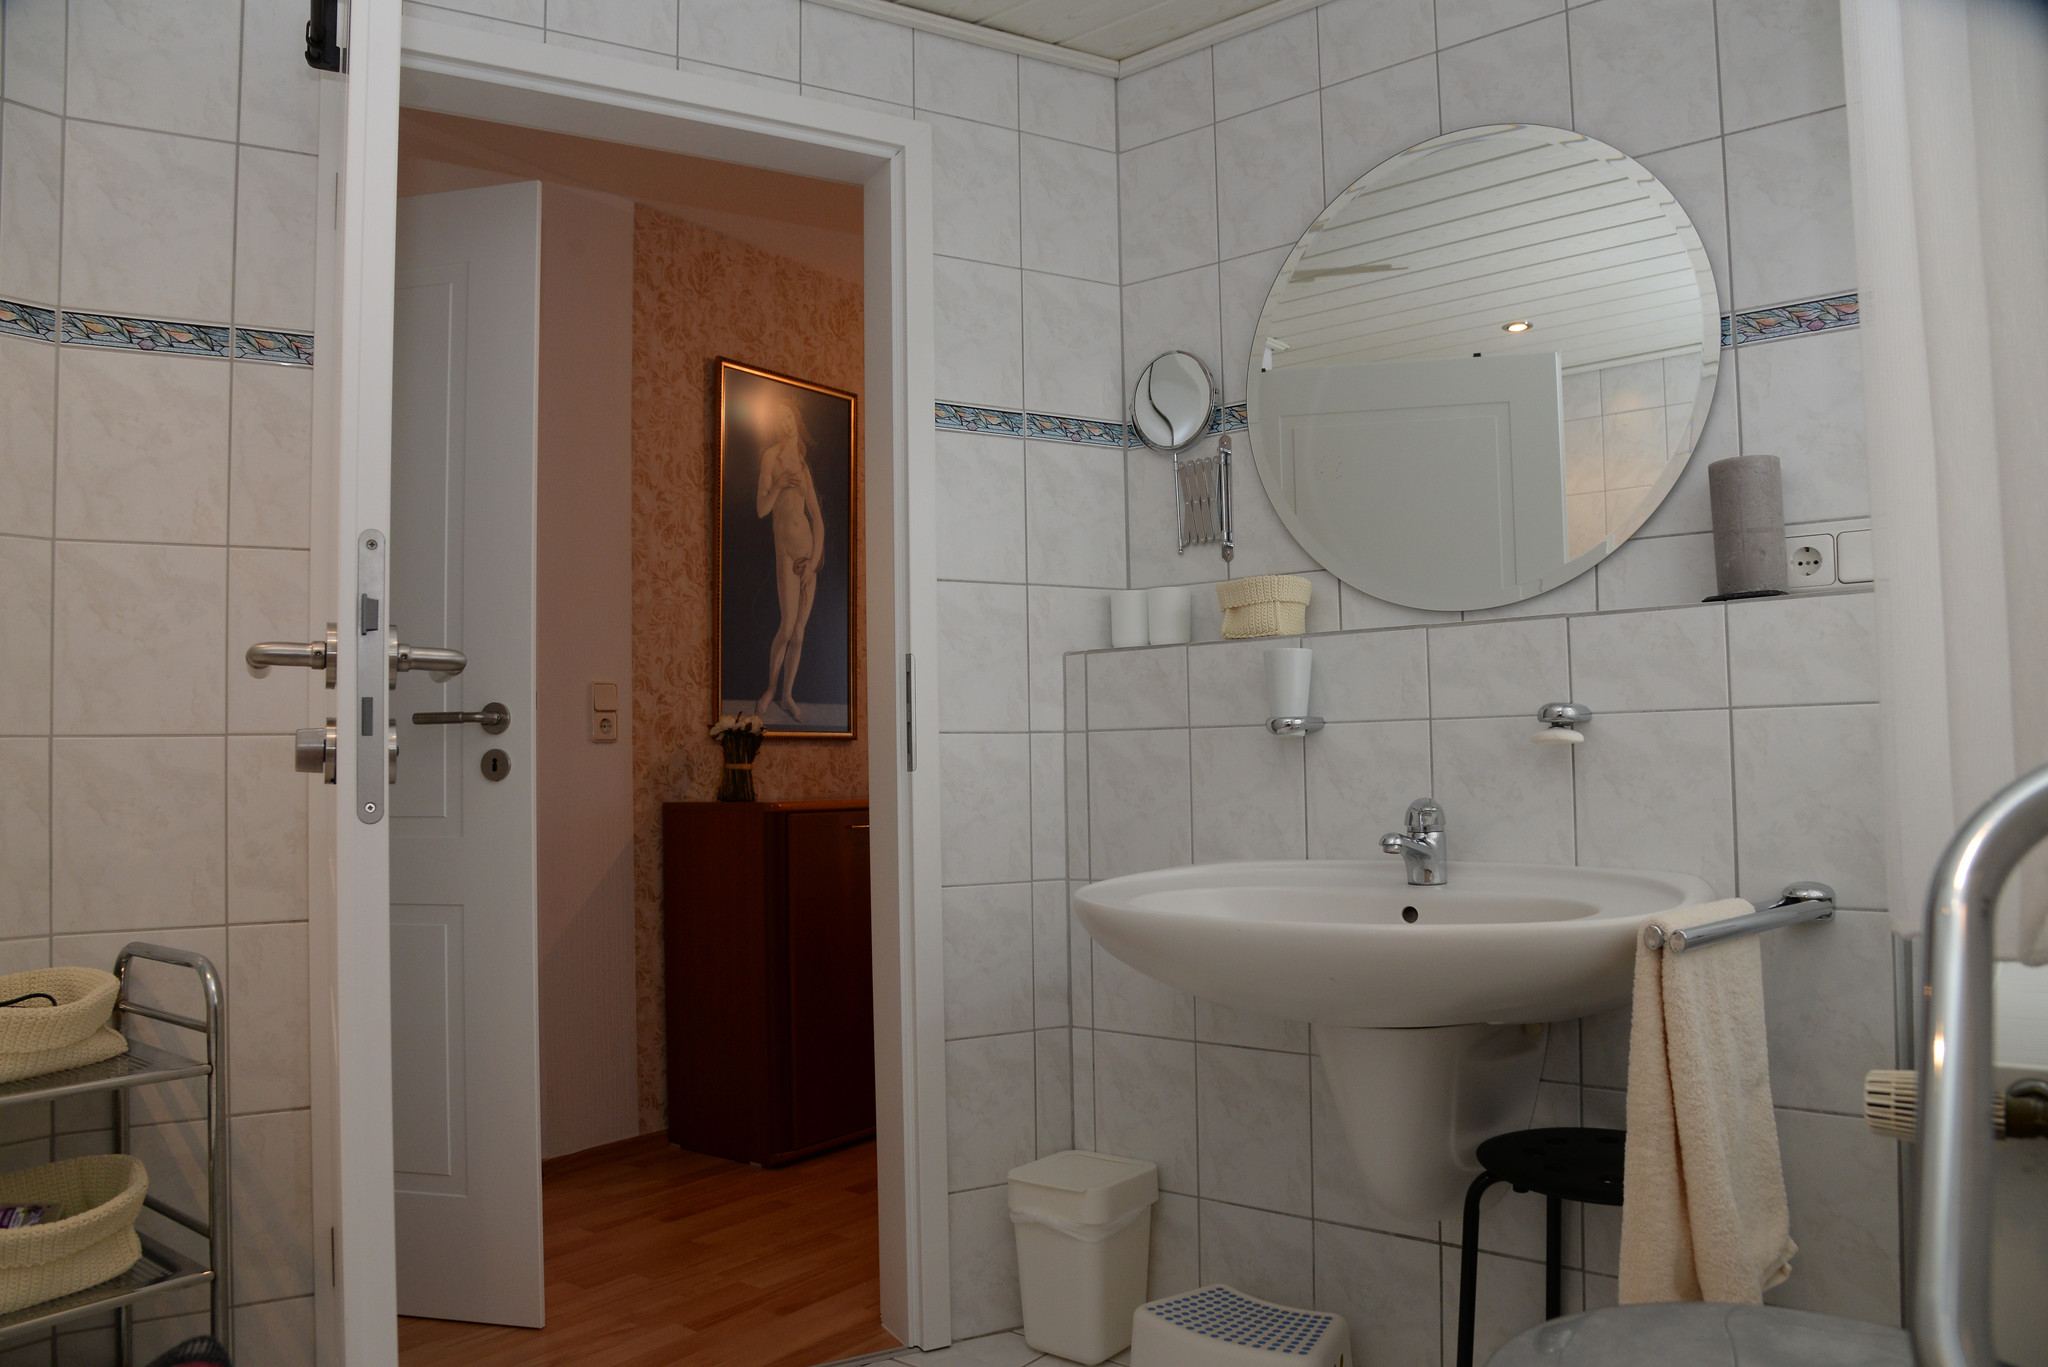 Badezimmer, bathroom, toilet